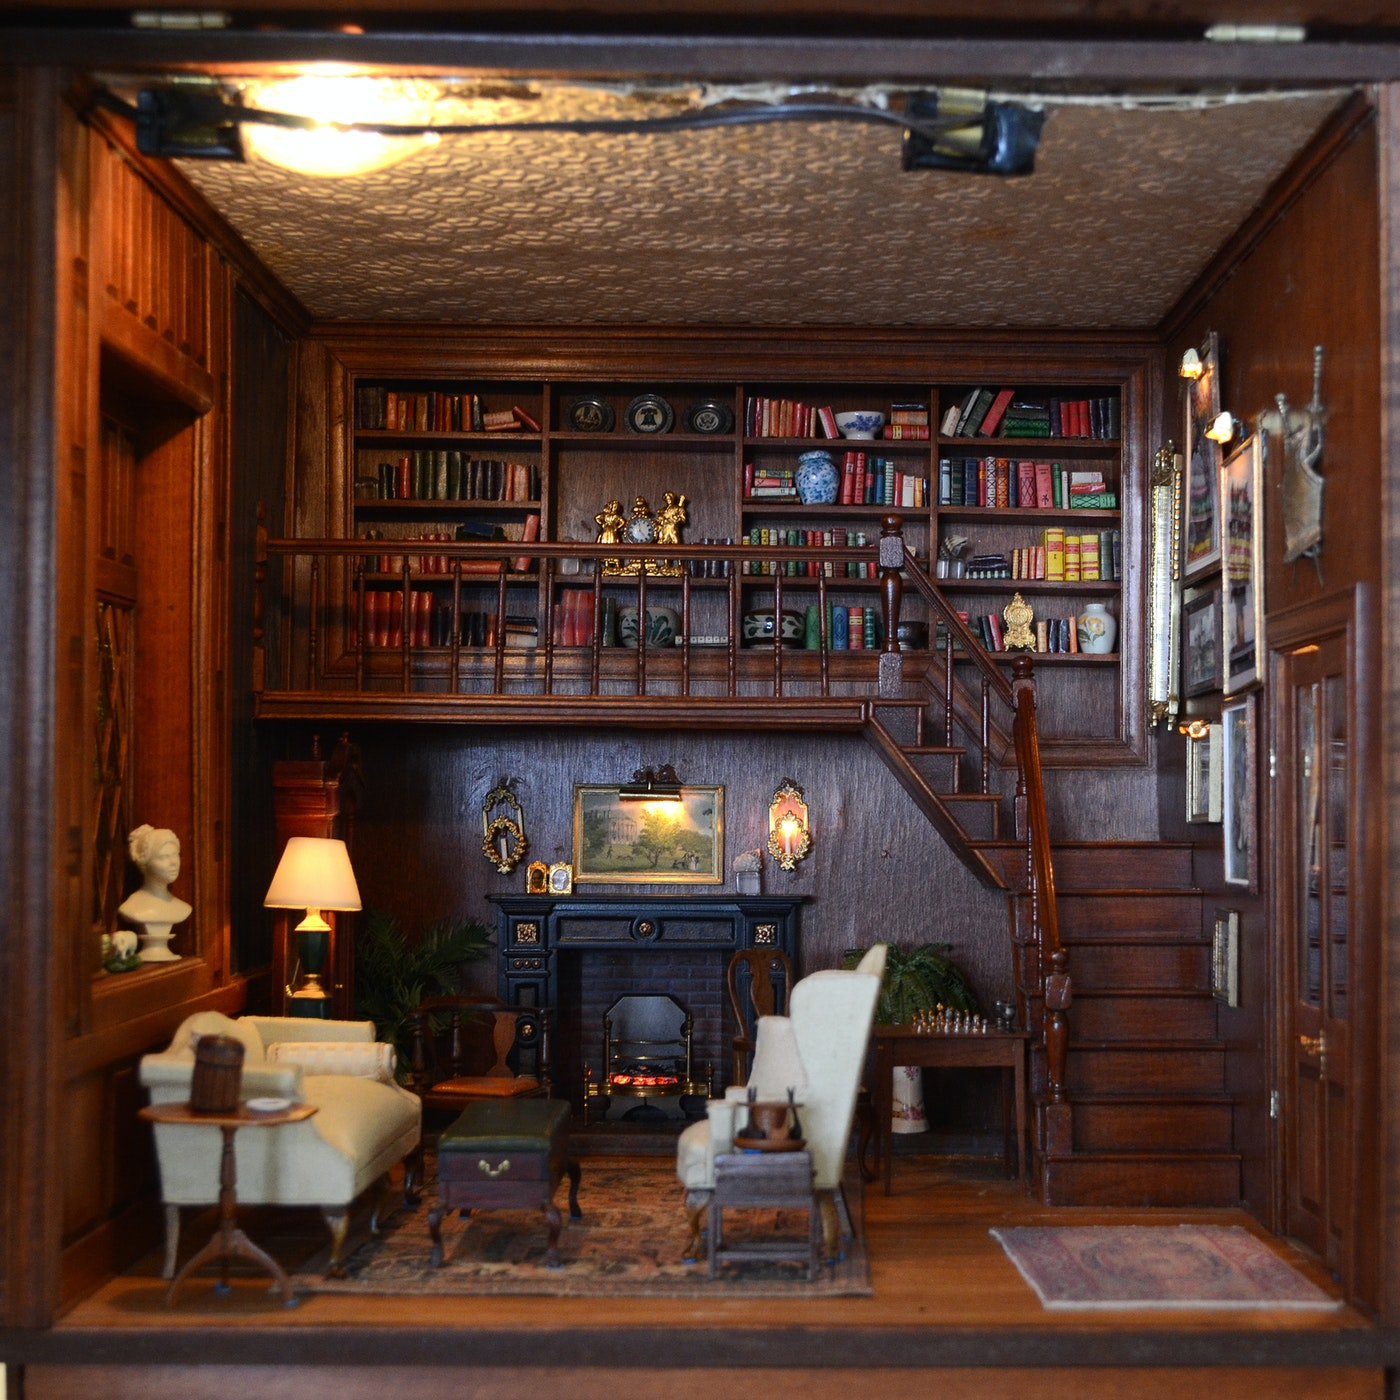 Vintage Miniature Library Room From The Charles Tebelman